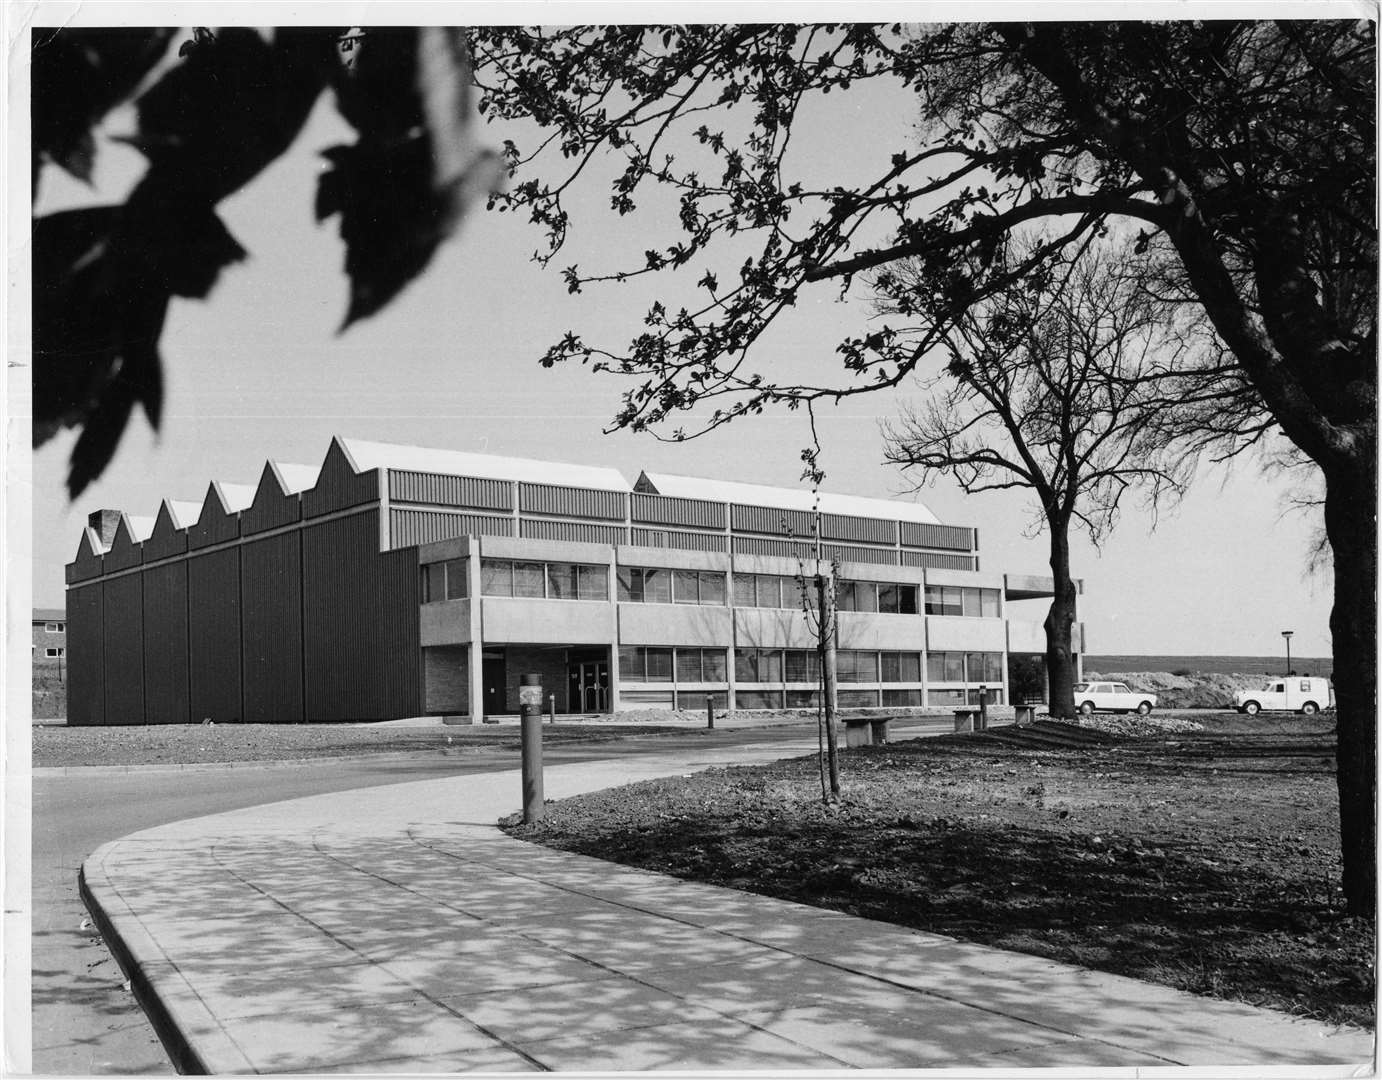 Haverhill Sports Centre (now Leisure Centre) in the 1970s Picture: Haverhill and District Local History Group